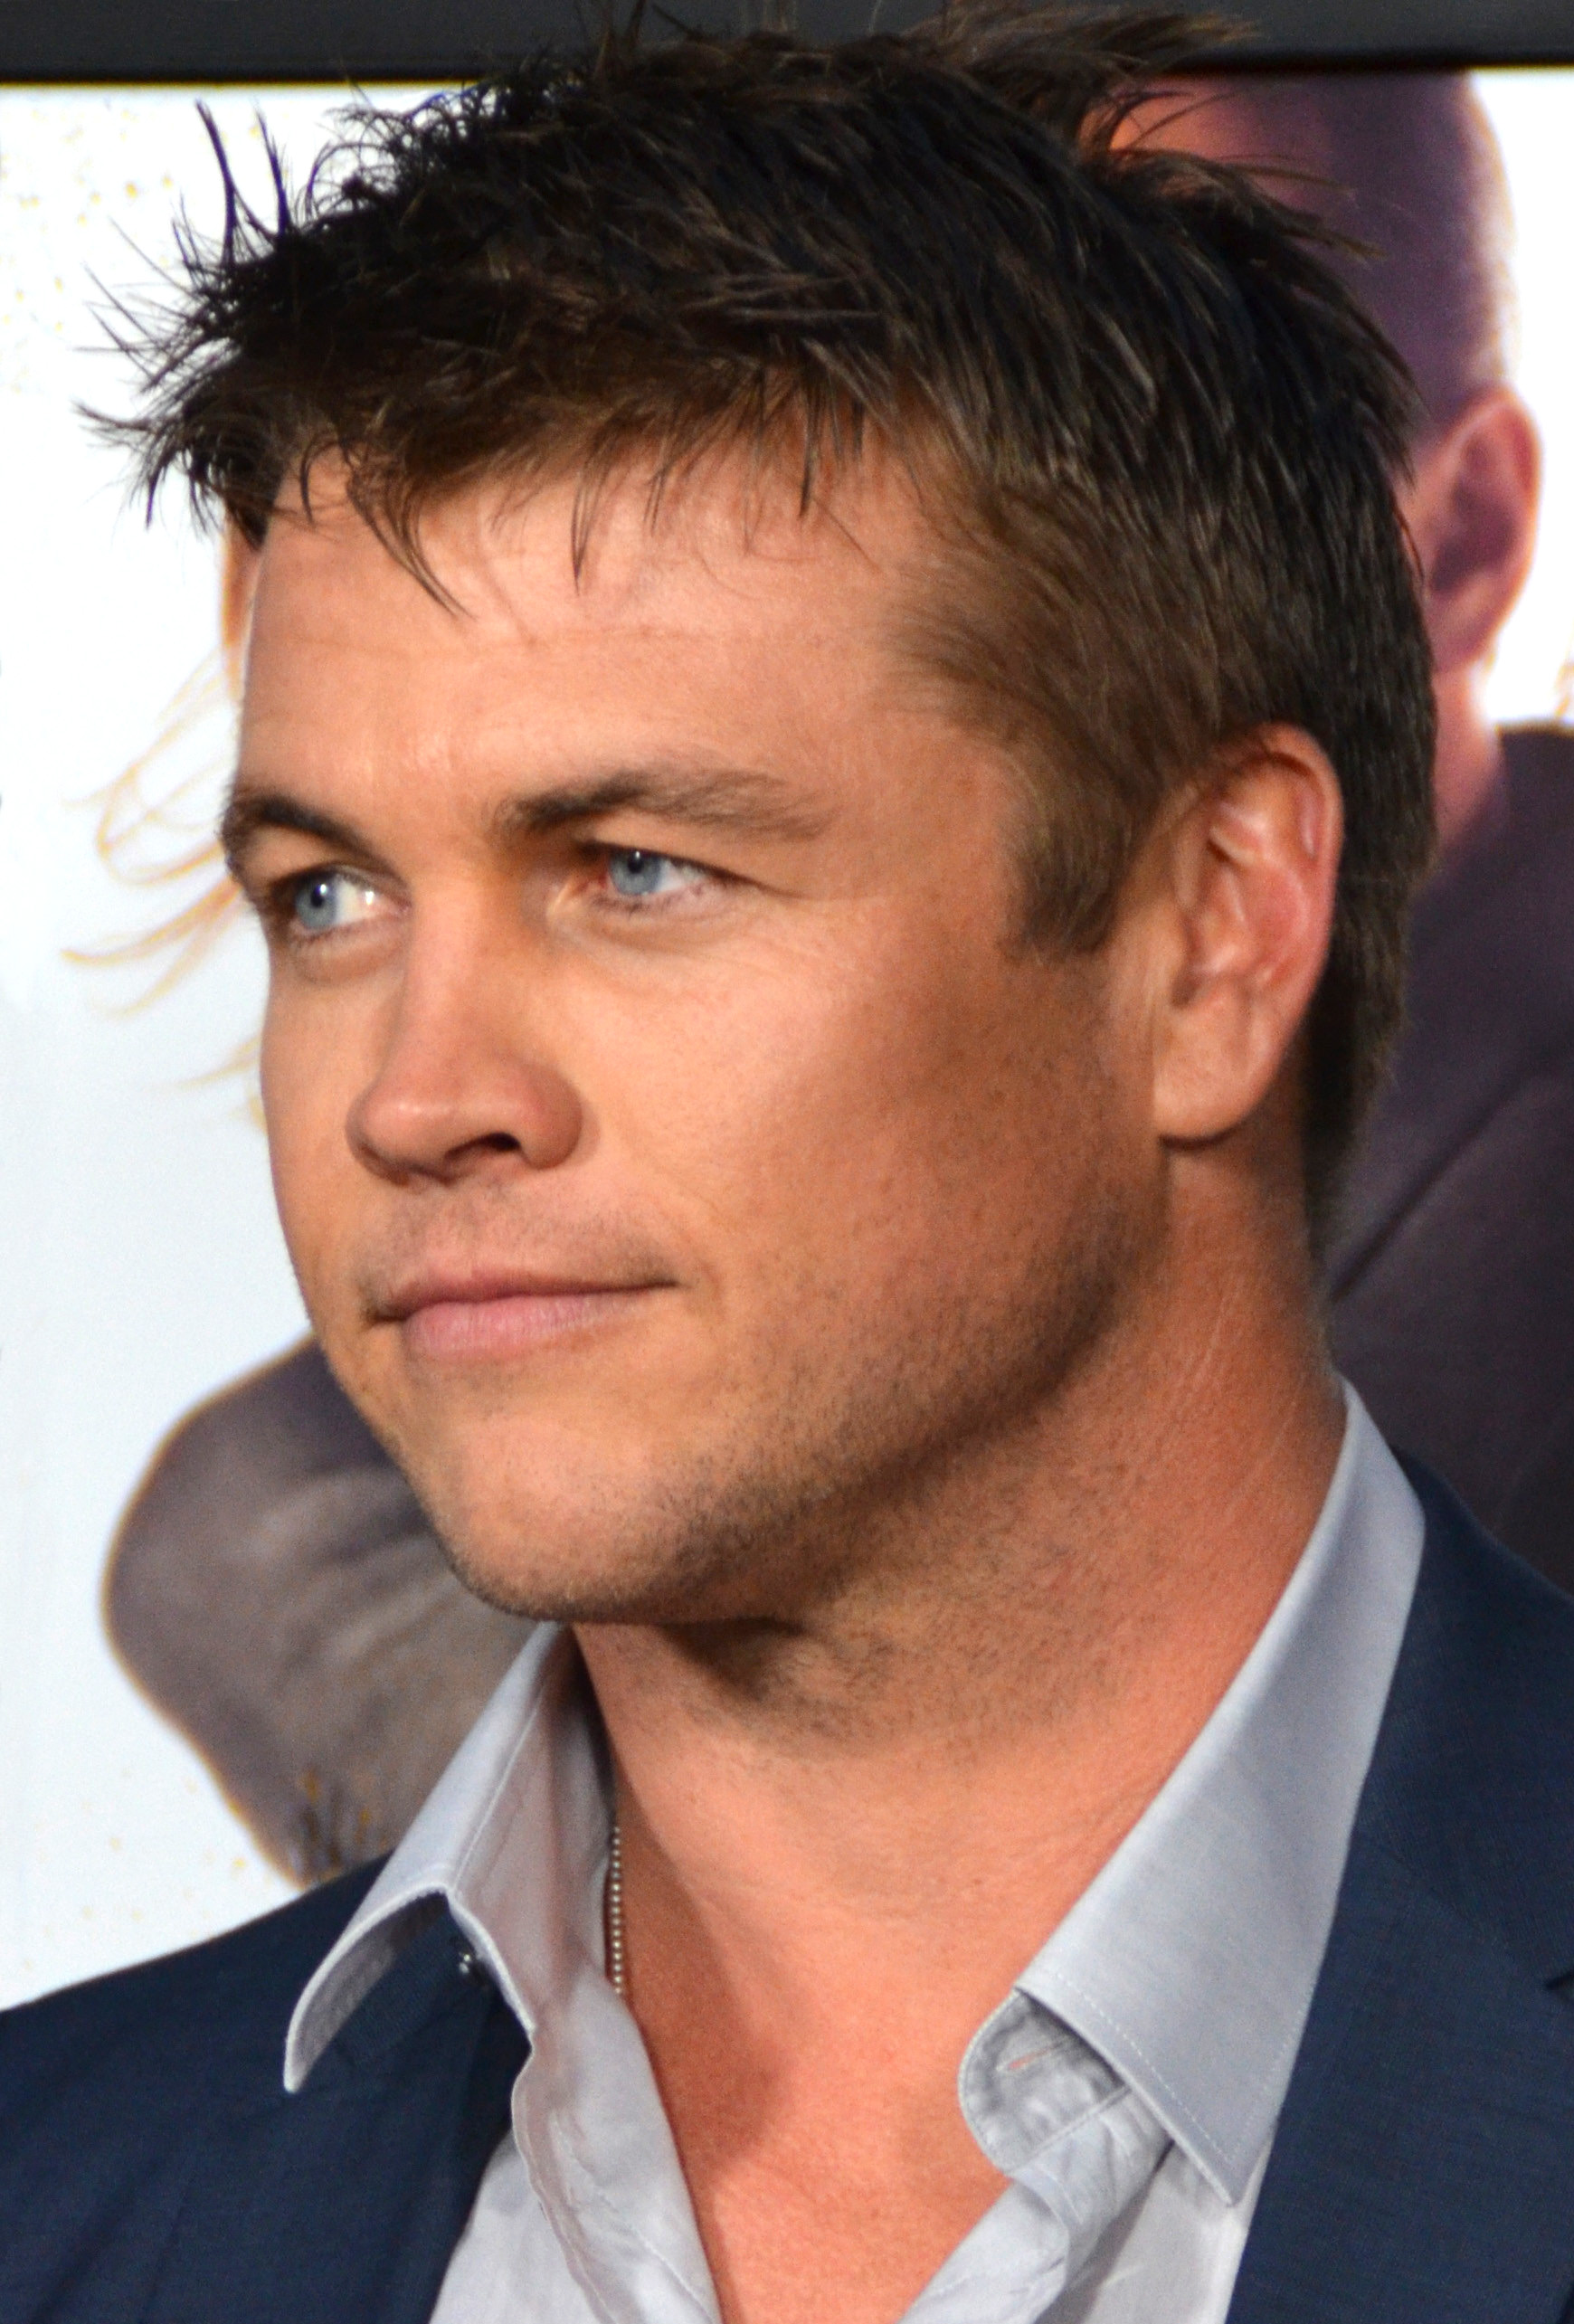 Luke Hemsworth earned a  million dollar salary - leaving the net worth at 0.5 million in 2018